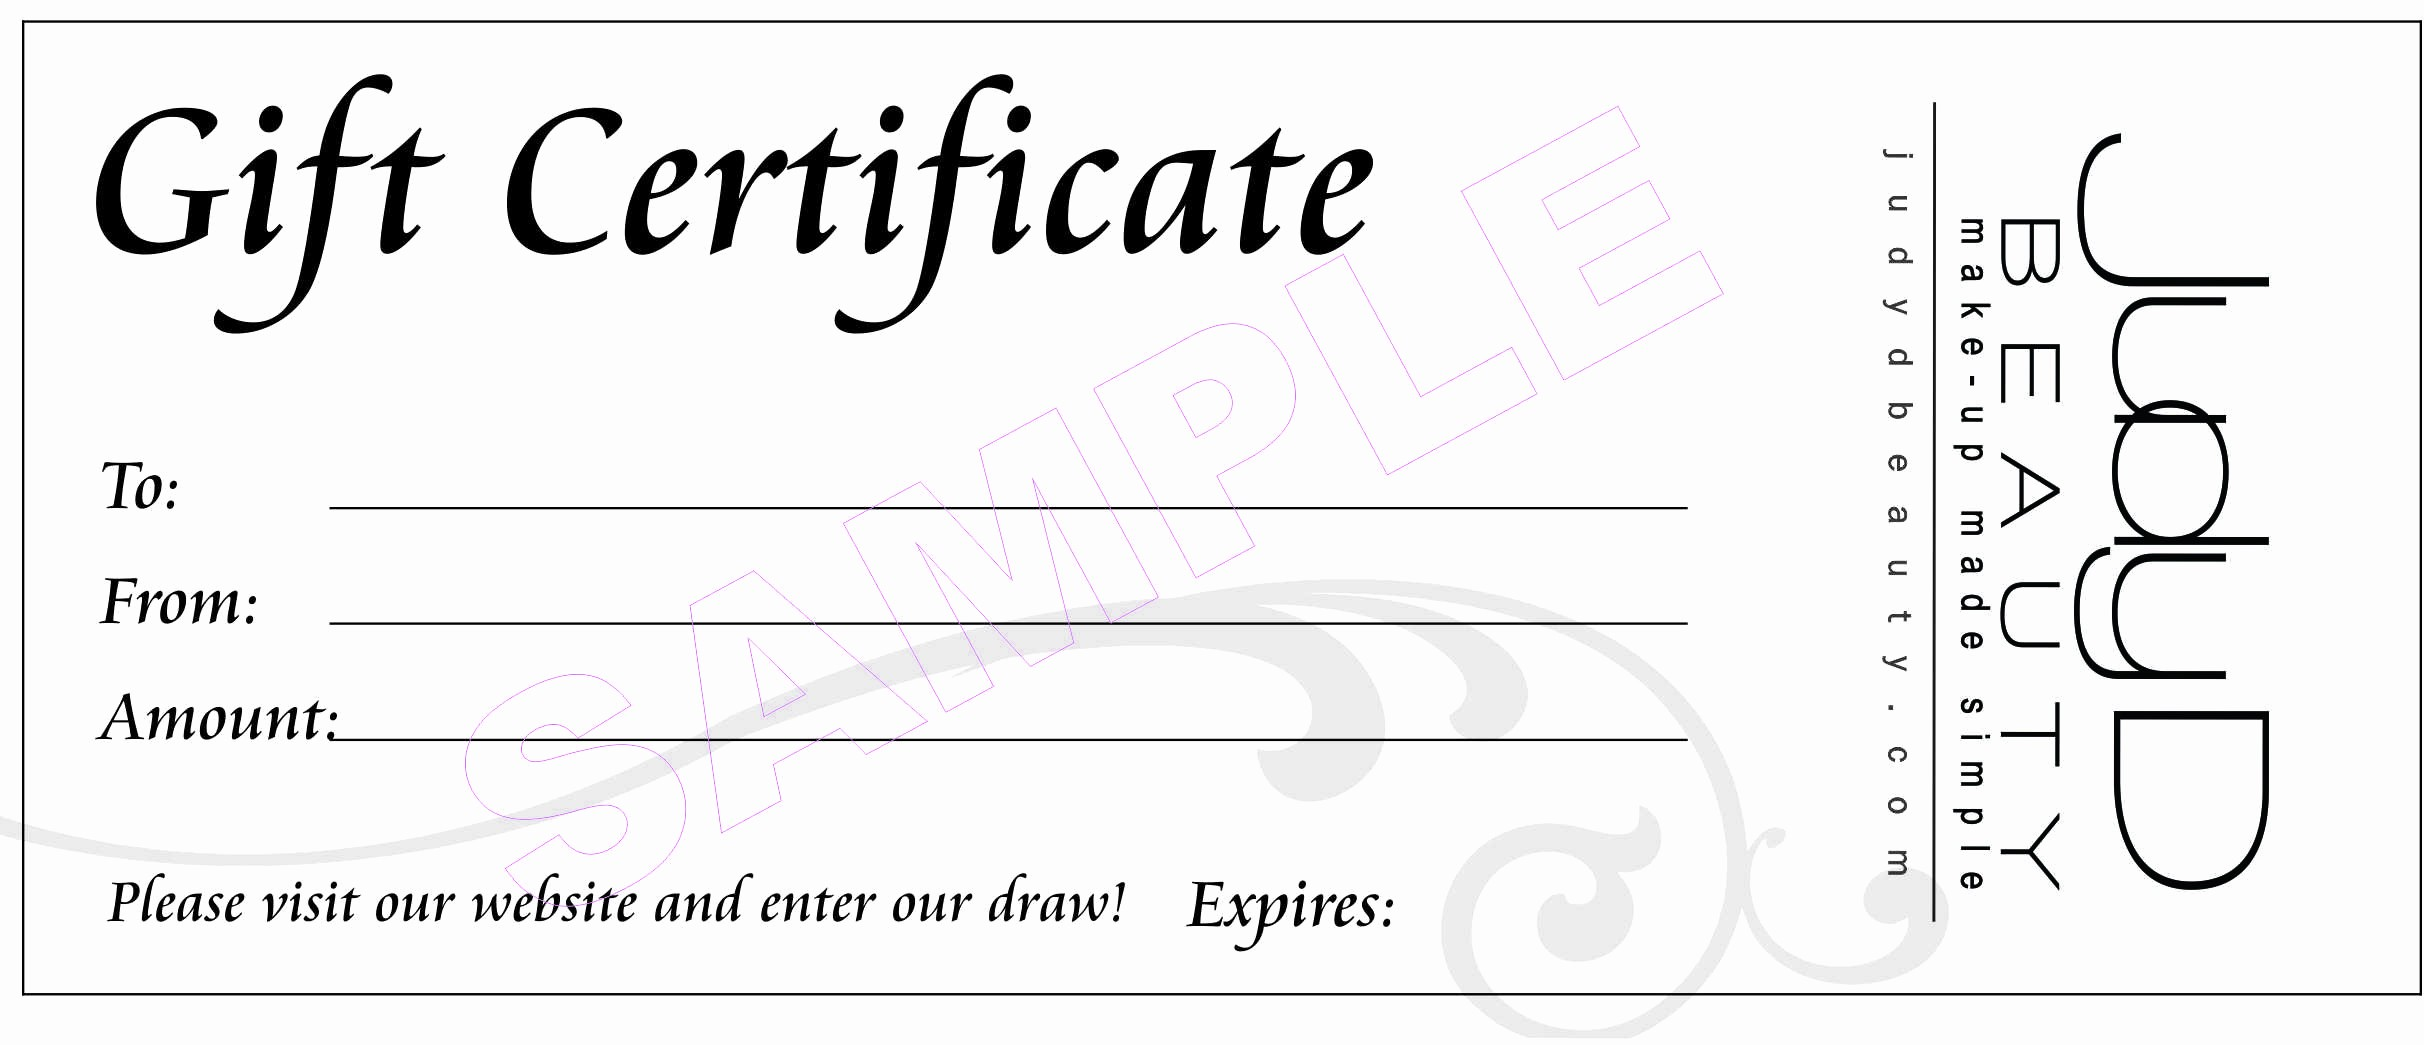 Make Gift Certificate Online Free Awesome 18 Gift Certificate Templates Excel Pdf formats